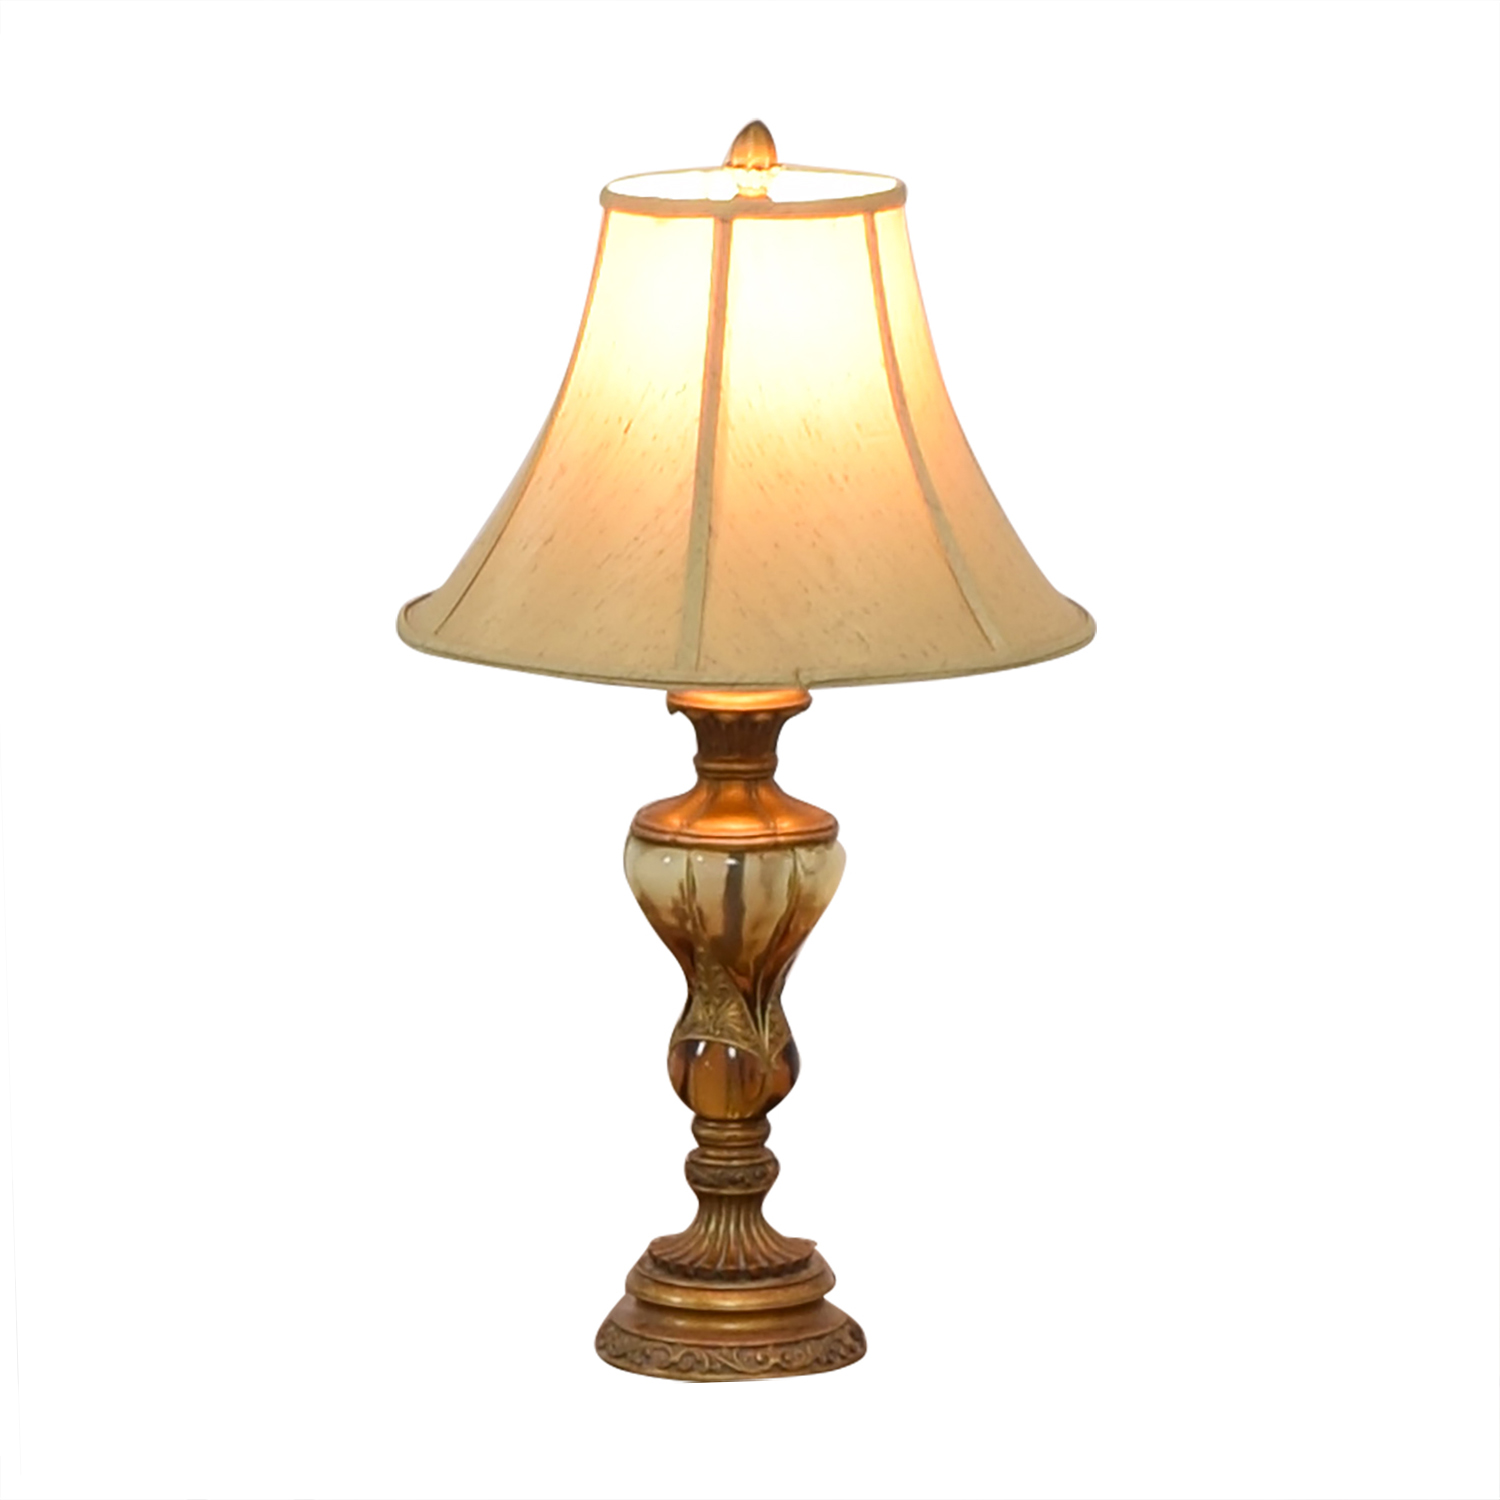 Gilded Faux Blown Glasswork Table Lamp on sale